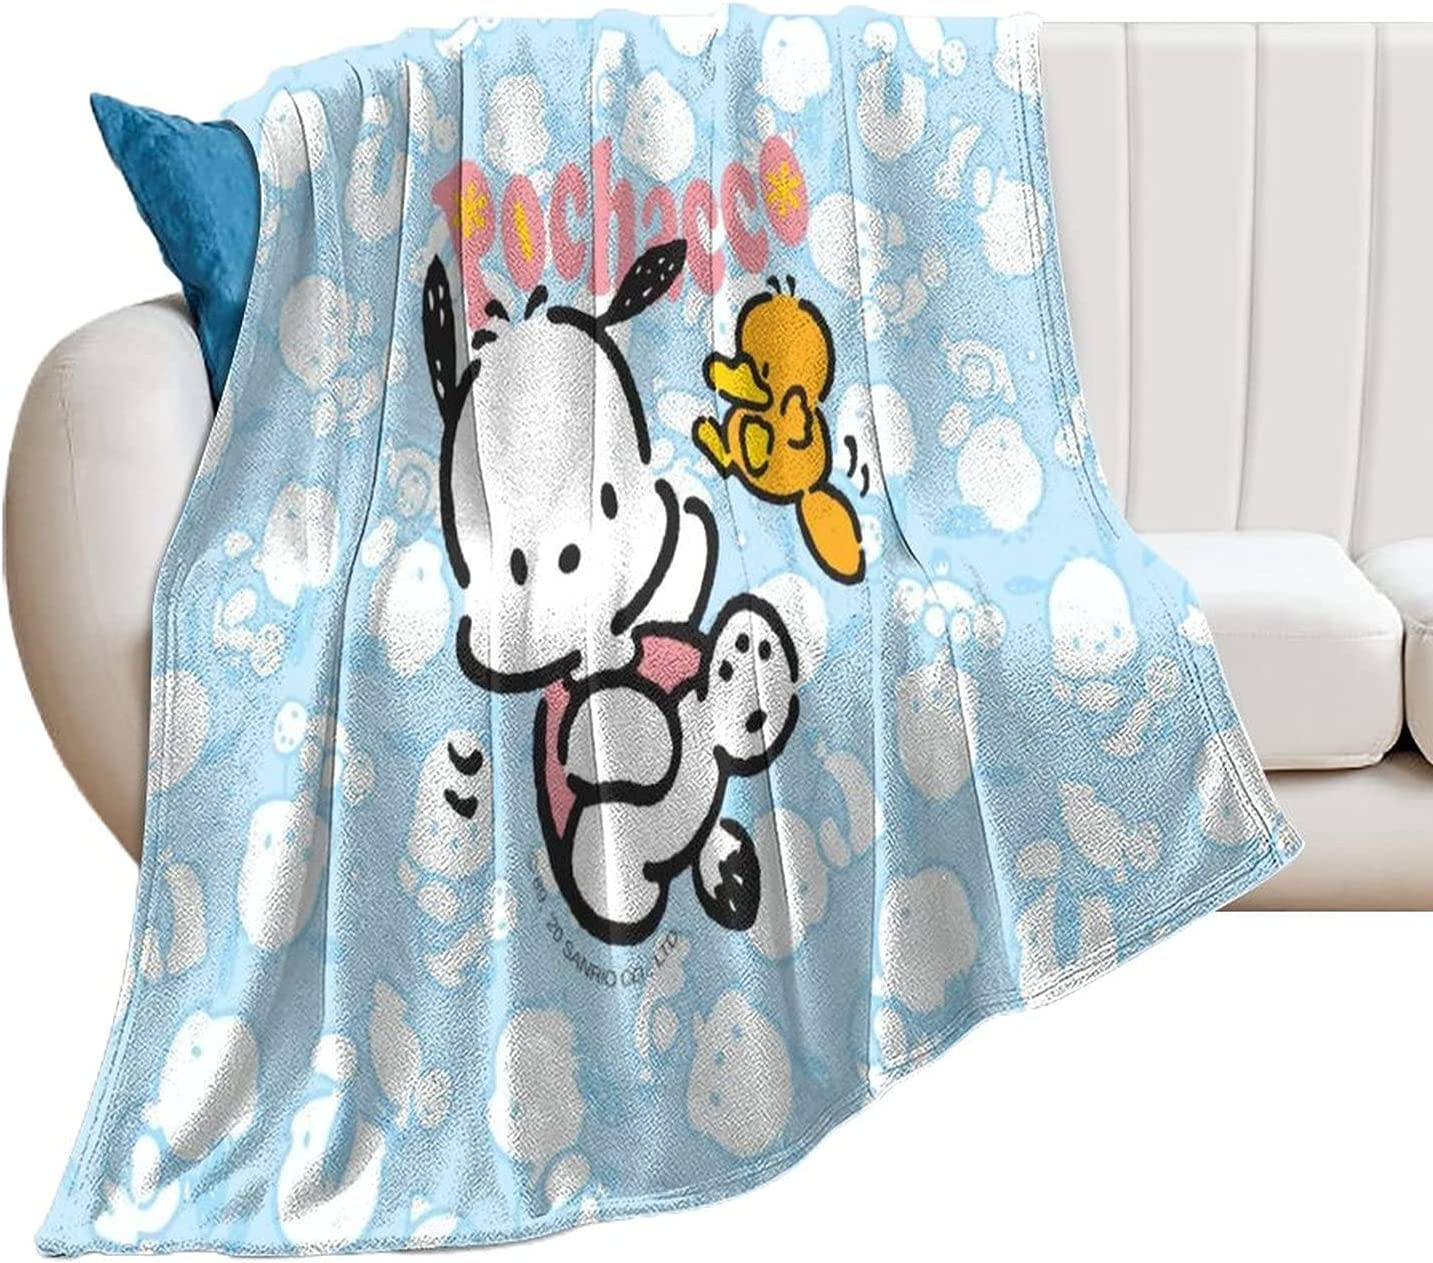 Super-cheap Poch-acco Flannel Throw Blanket Max 79% OFF Cozy Pilling Prevent Resi Fluffy